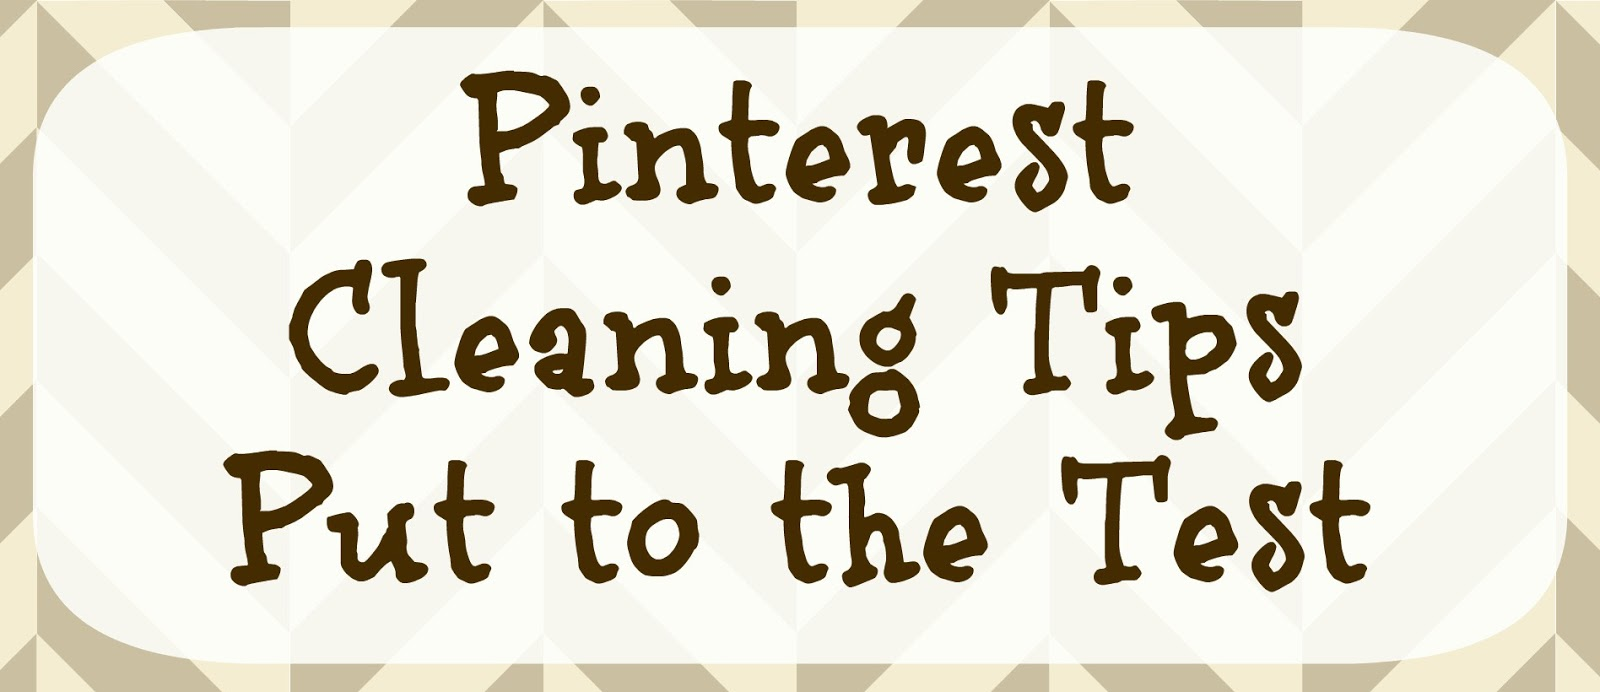 Pinterest Cleaning Tips Tested